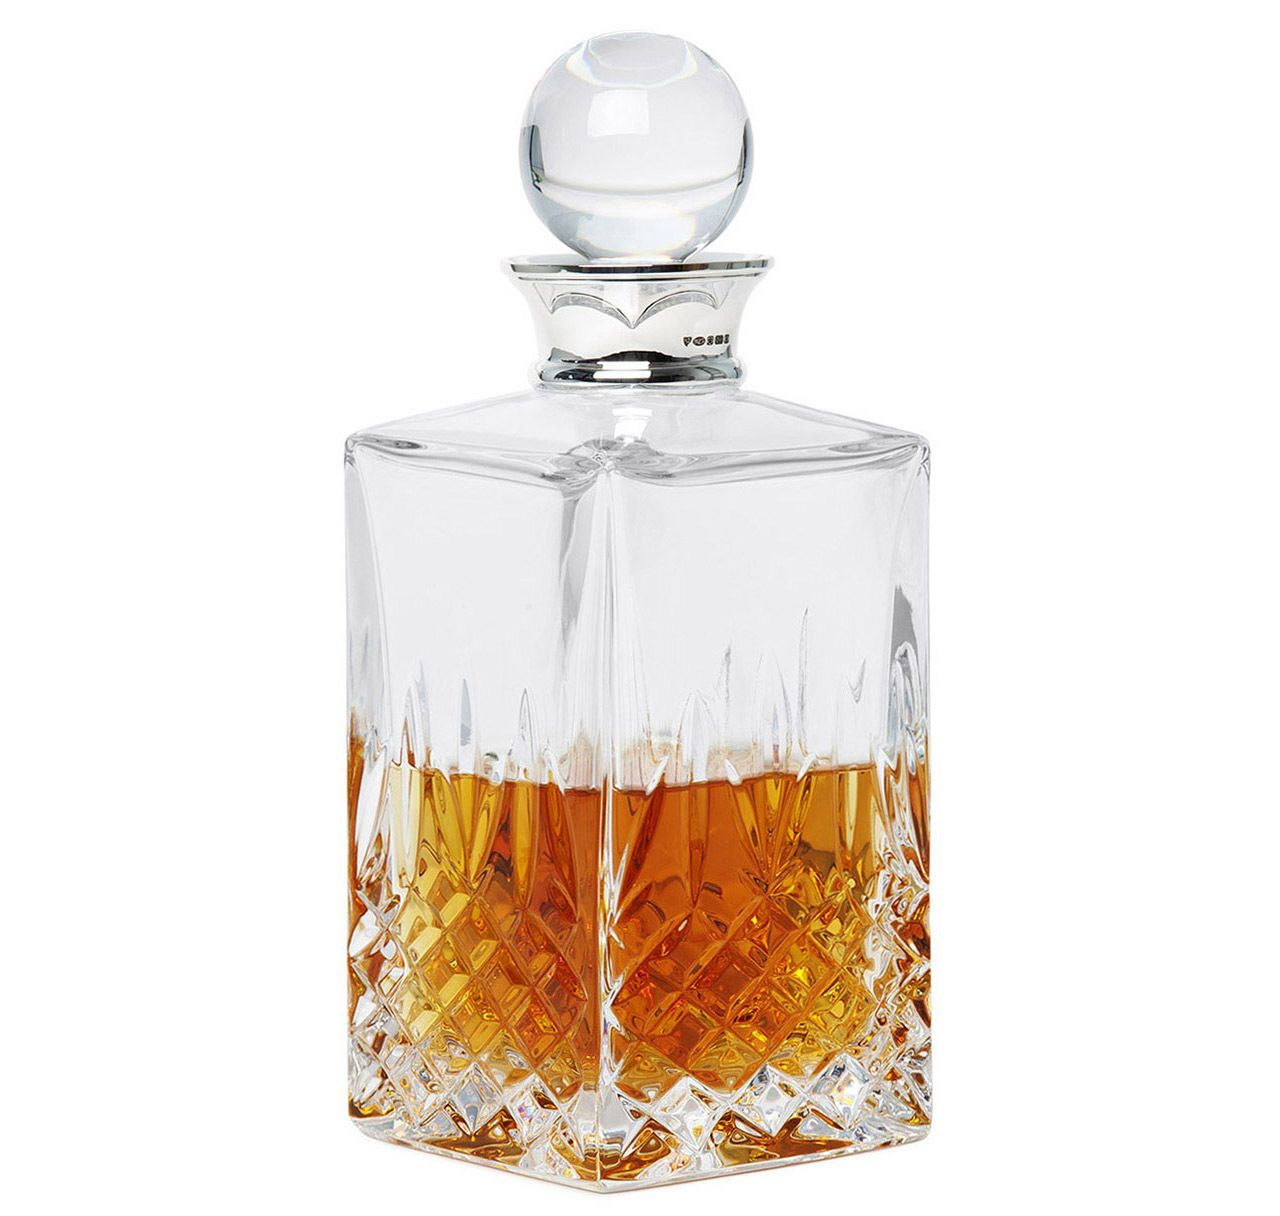 sterling silver crystal balmore spirits decanter decanter crystals and squares. Black Bedroom Furniture Sets. Home Design Ideas